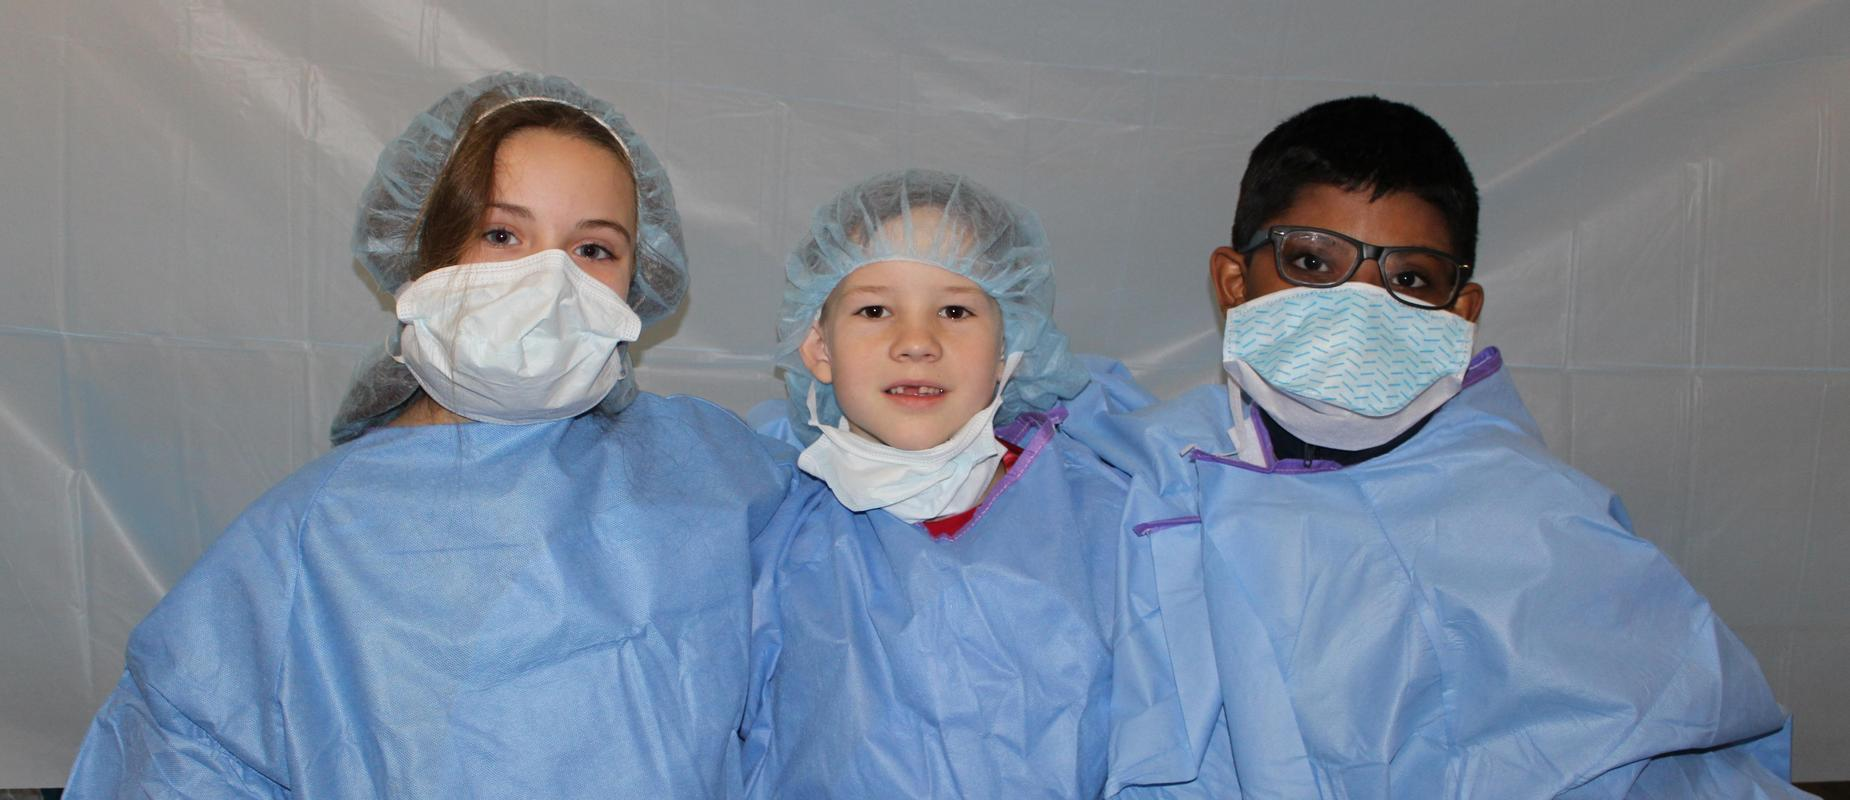 three third graders in hospital scrubs and masks